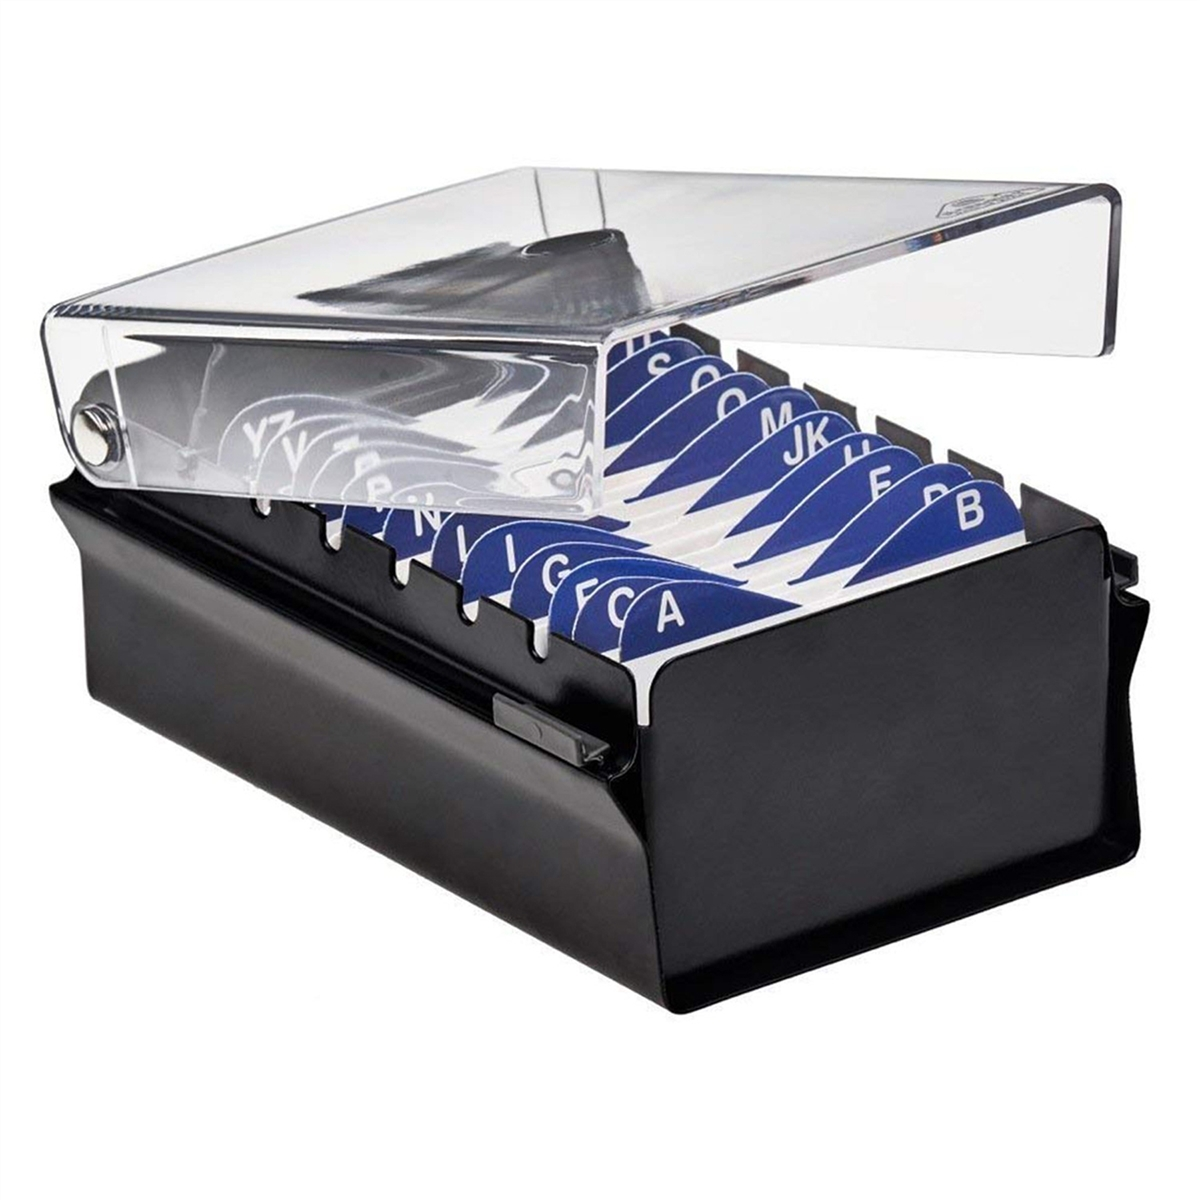 Acrimet Index Business Card File holder (Black Color with Crystal ...